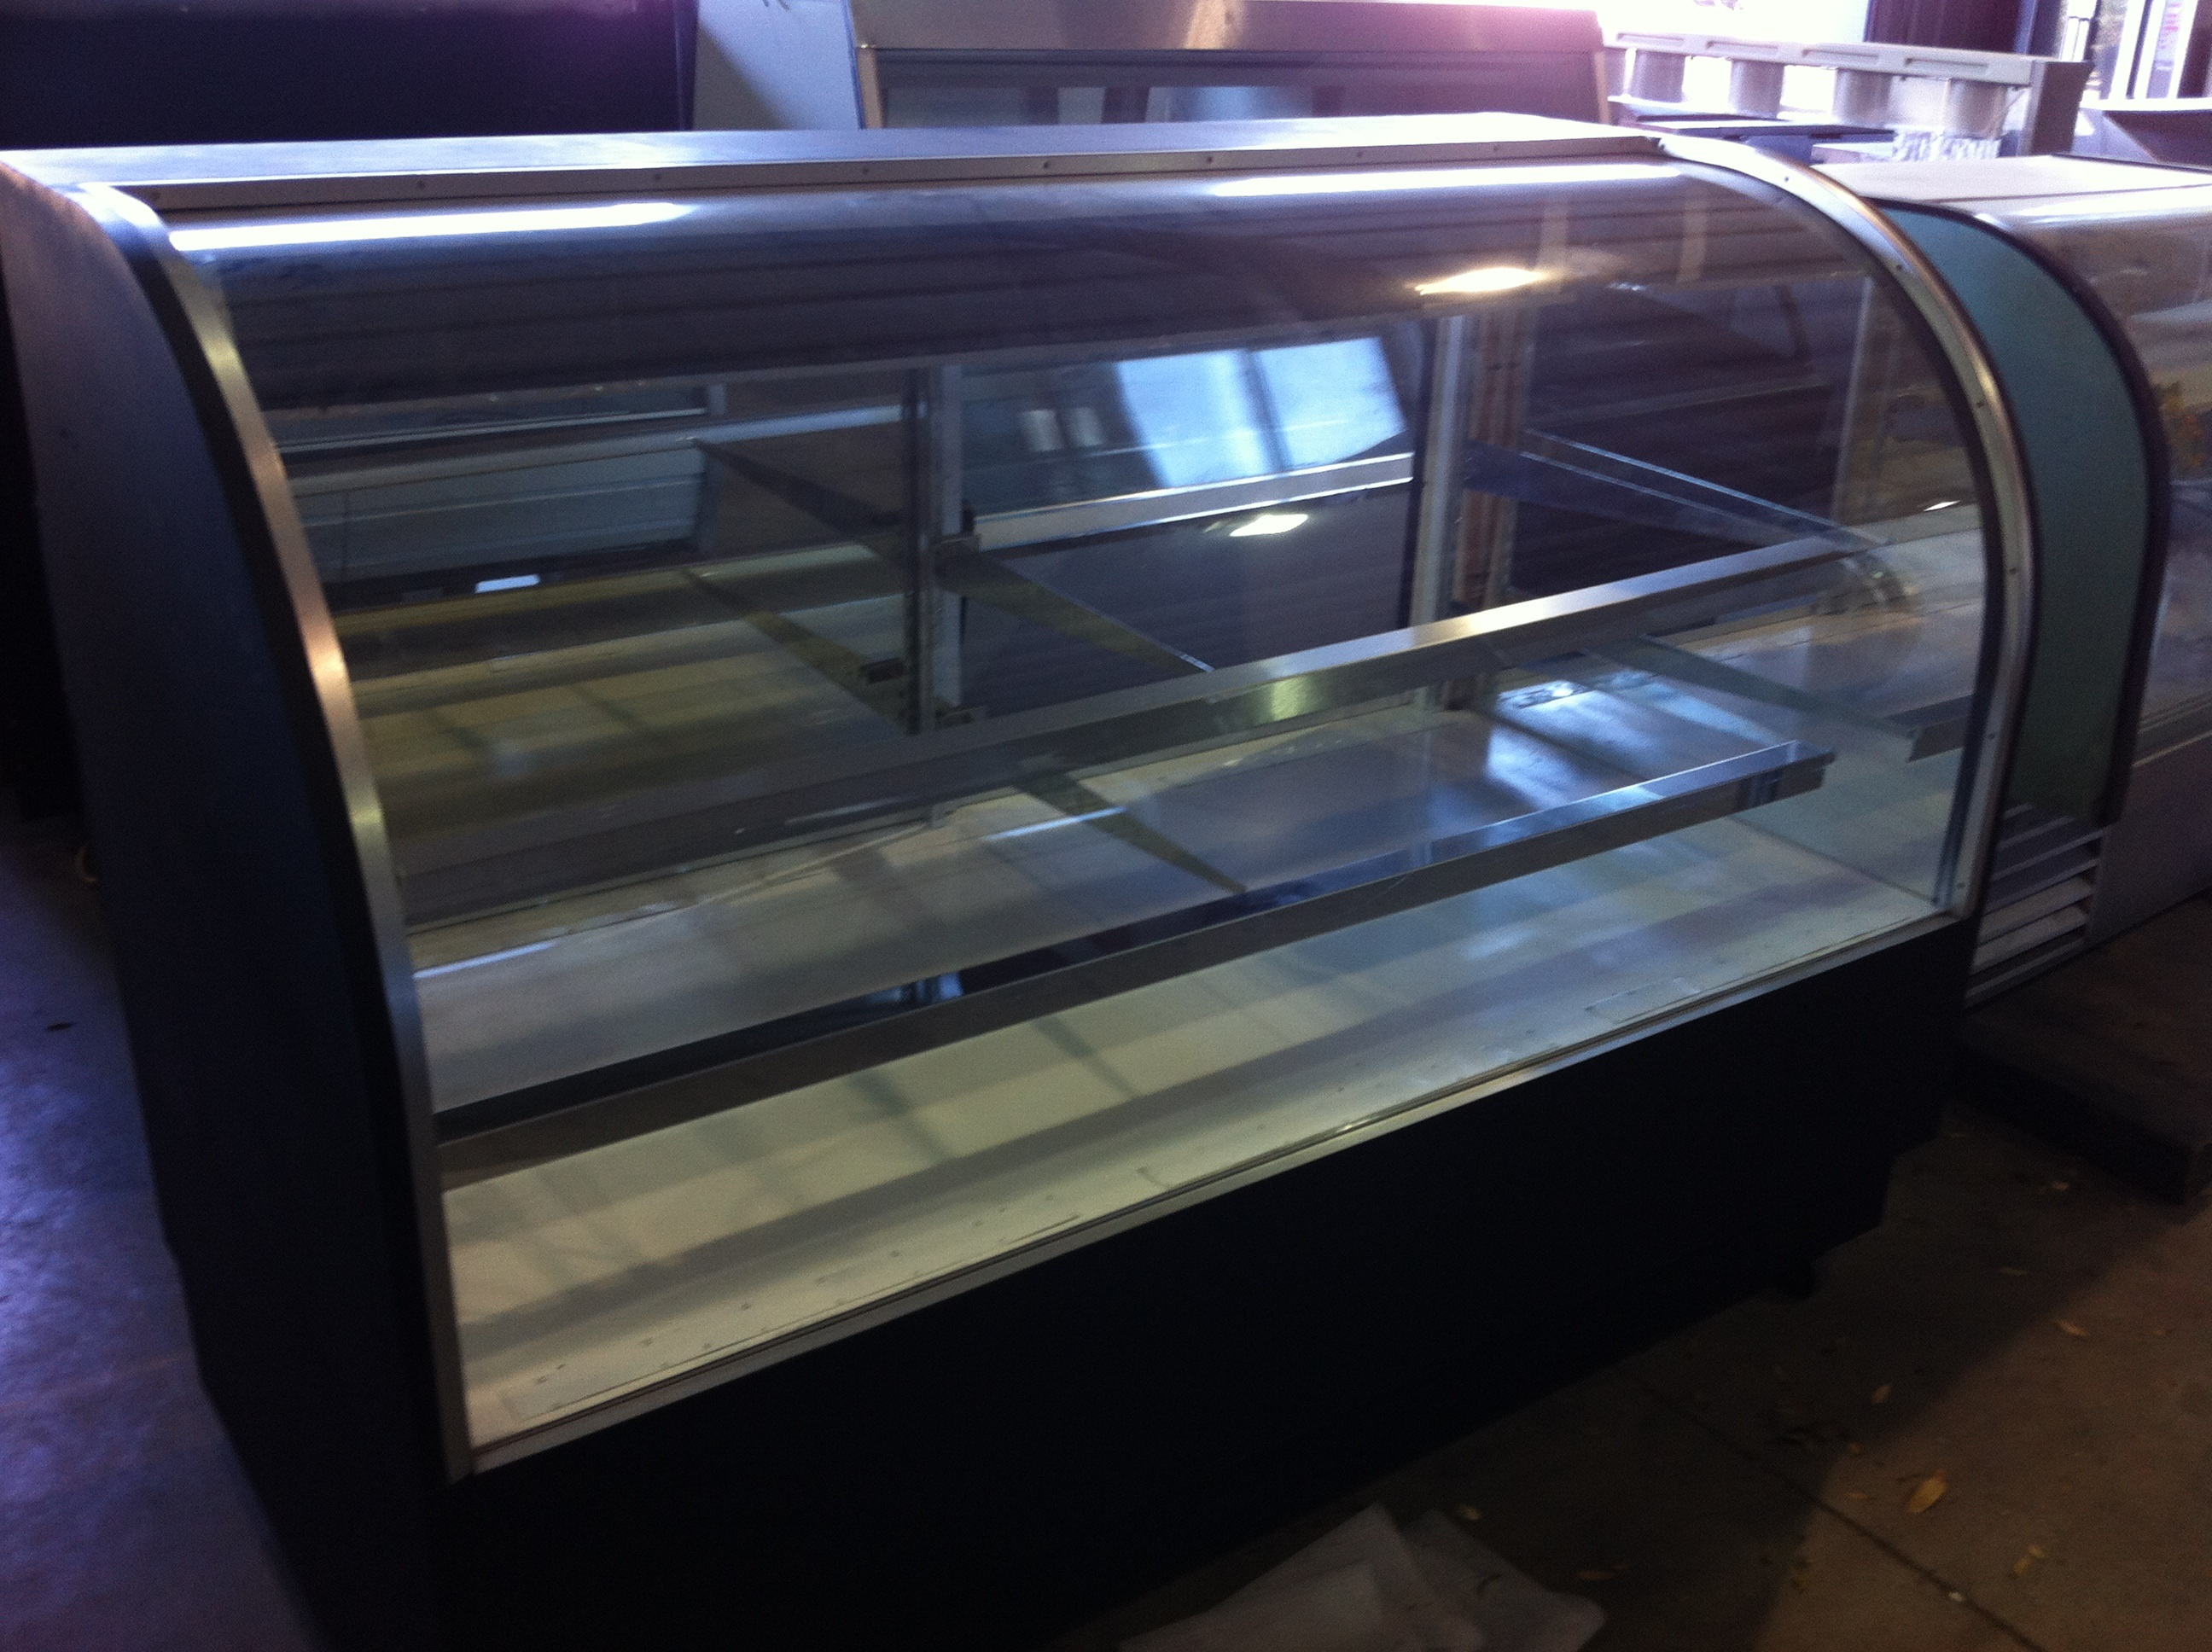 Fine Selection of Used Display Cases on Sale – One Fat Frog